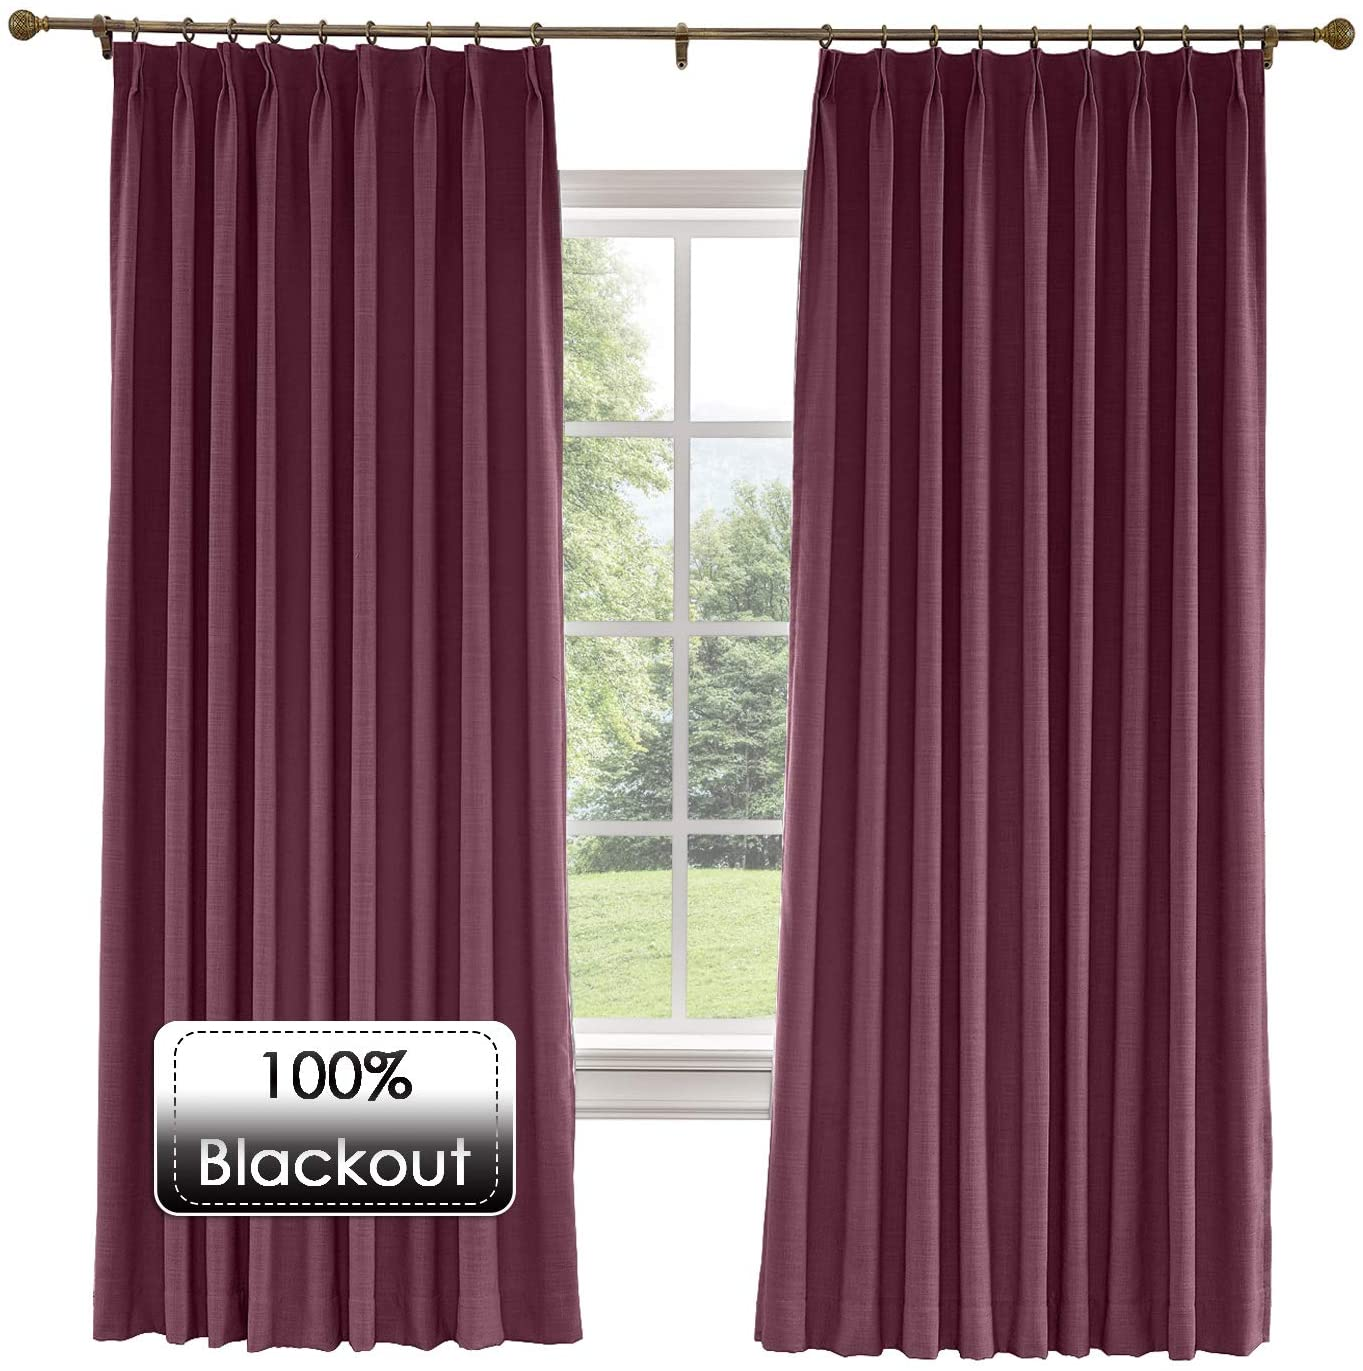 Prim Patio Sliding Door Curtains Linen Room Darkening Thermal Insulated Blackout Pinch Pleat Window Curtain for Living Room, Plum, 100x84-inch, 1 Panel